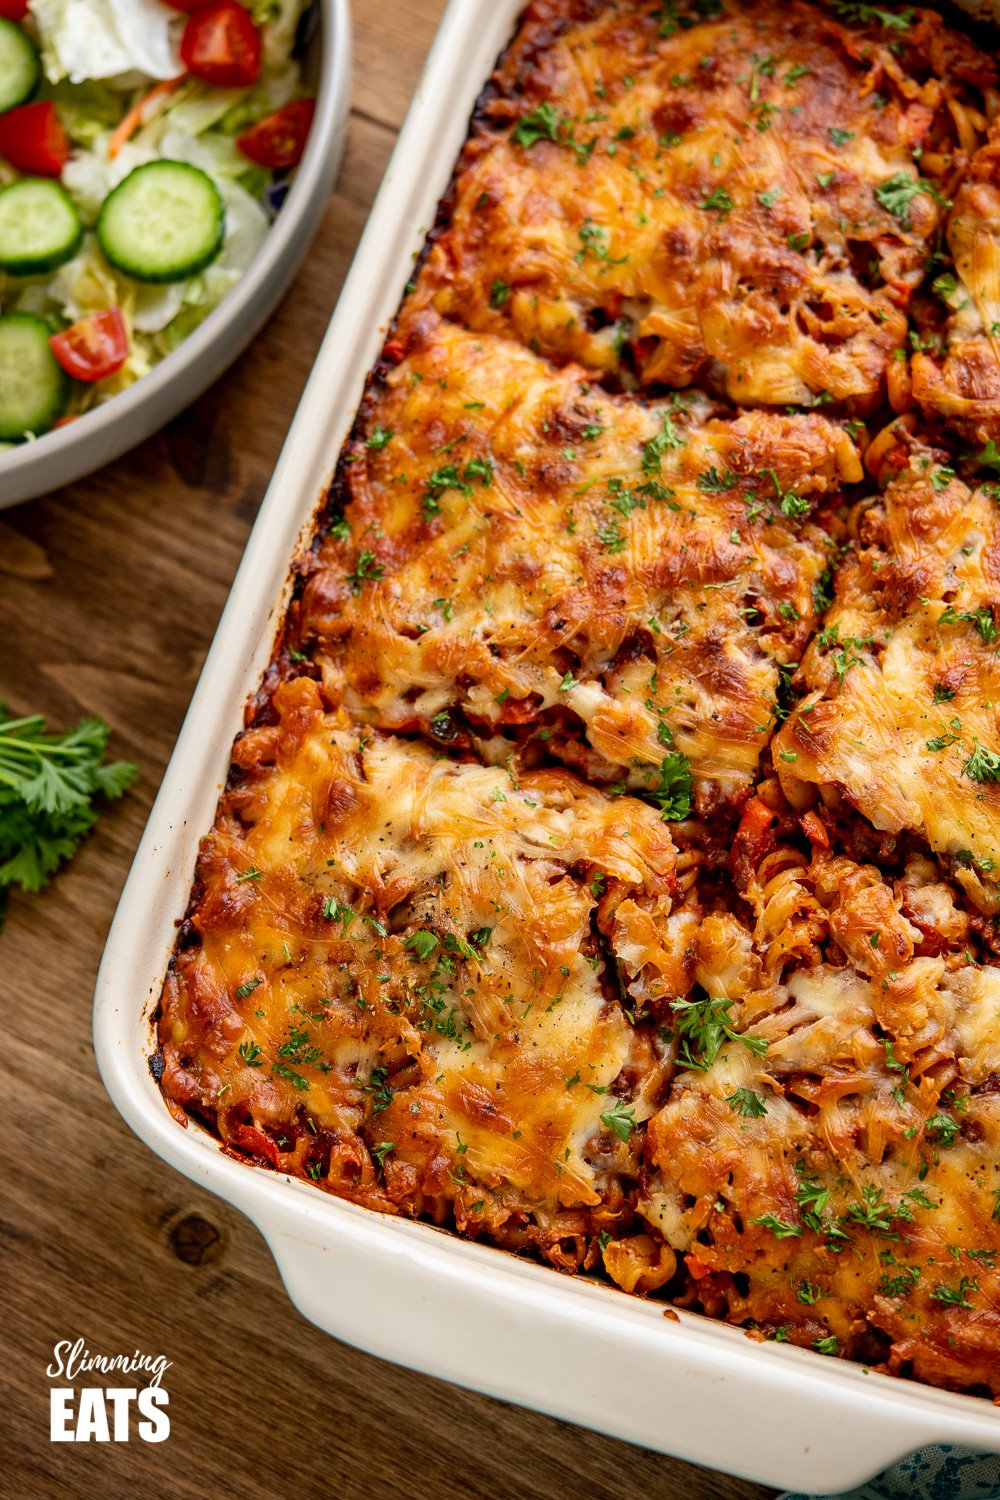 Syn Free Bolognese Pasta Bake in oven proof dish on wooden board with bowl of salad